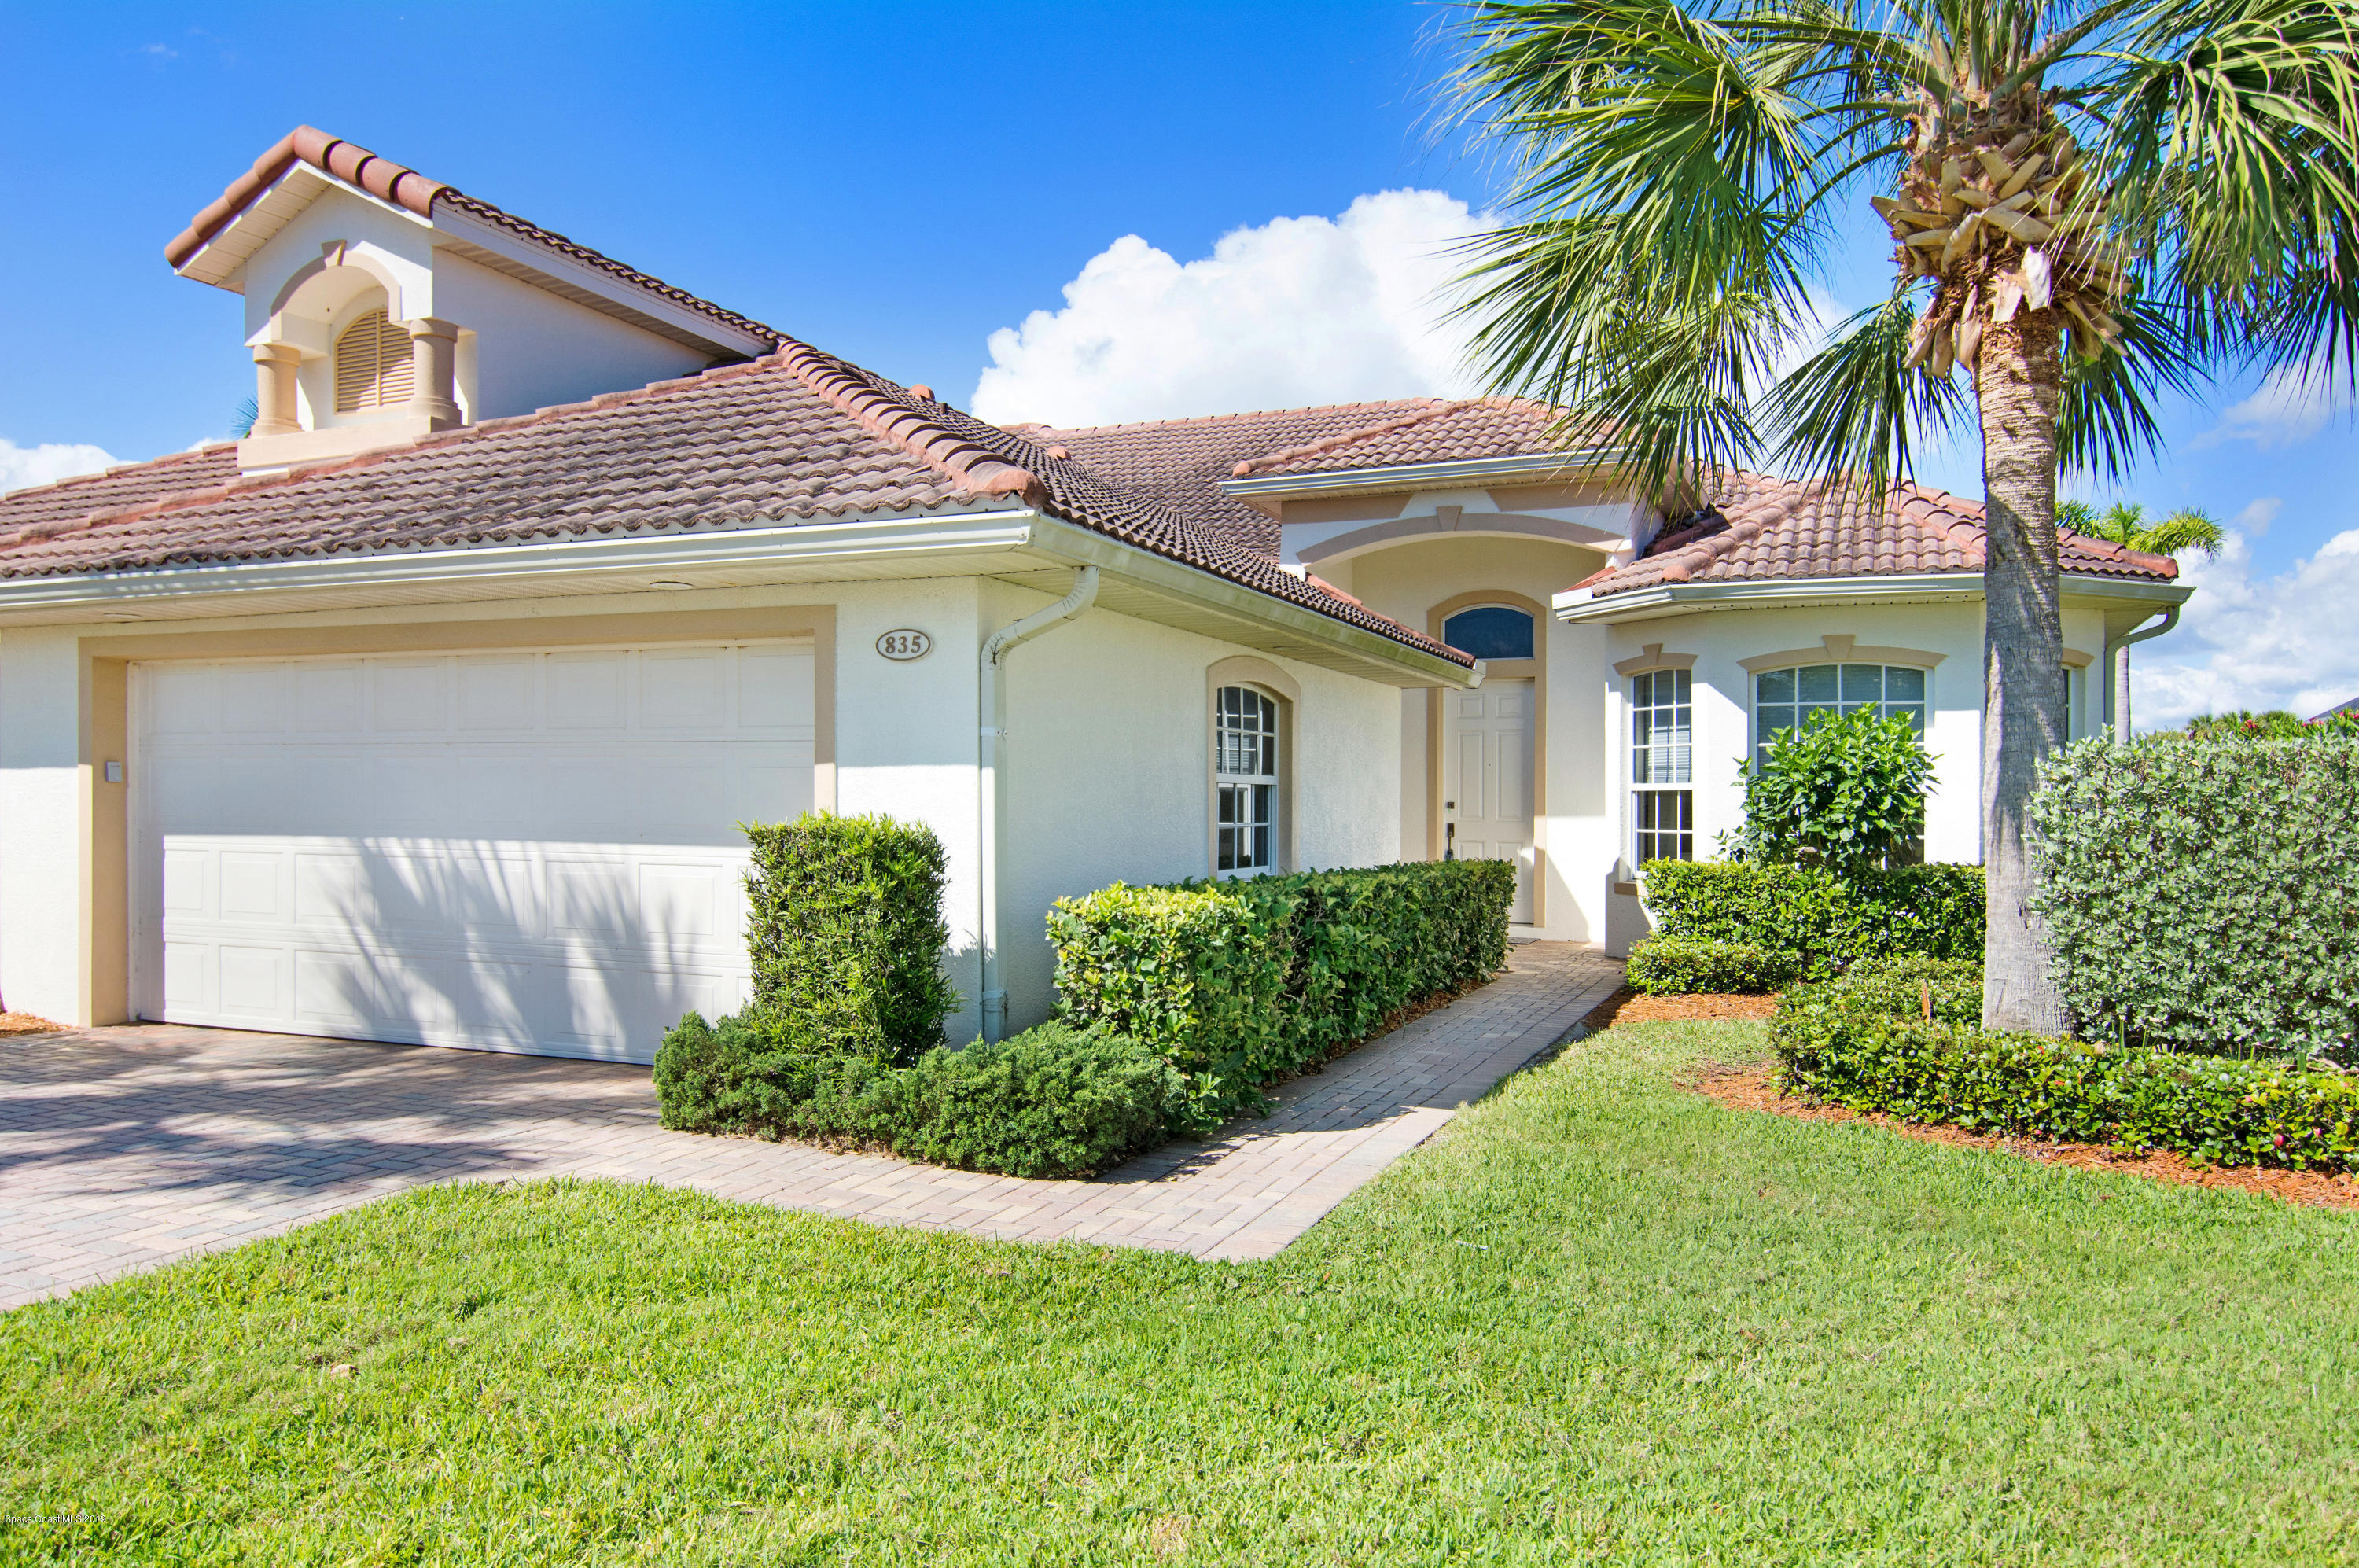 Single Family Homes for Sale at 835 Aquarina Melbourne Beach, Florida 32951 United States